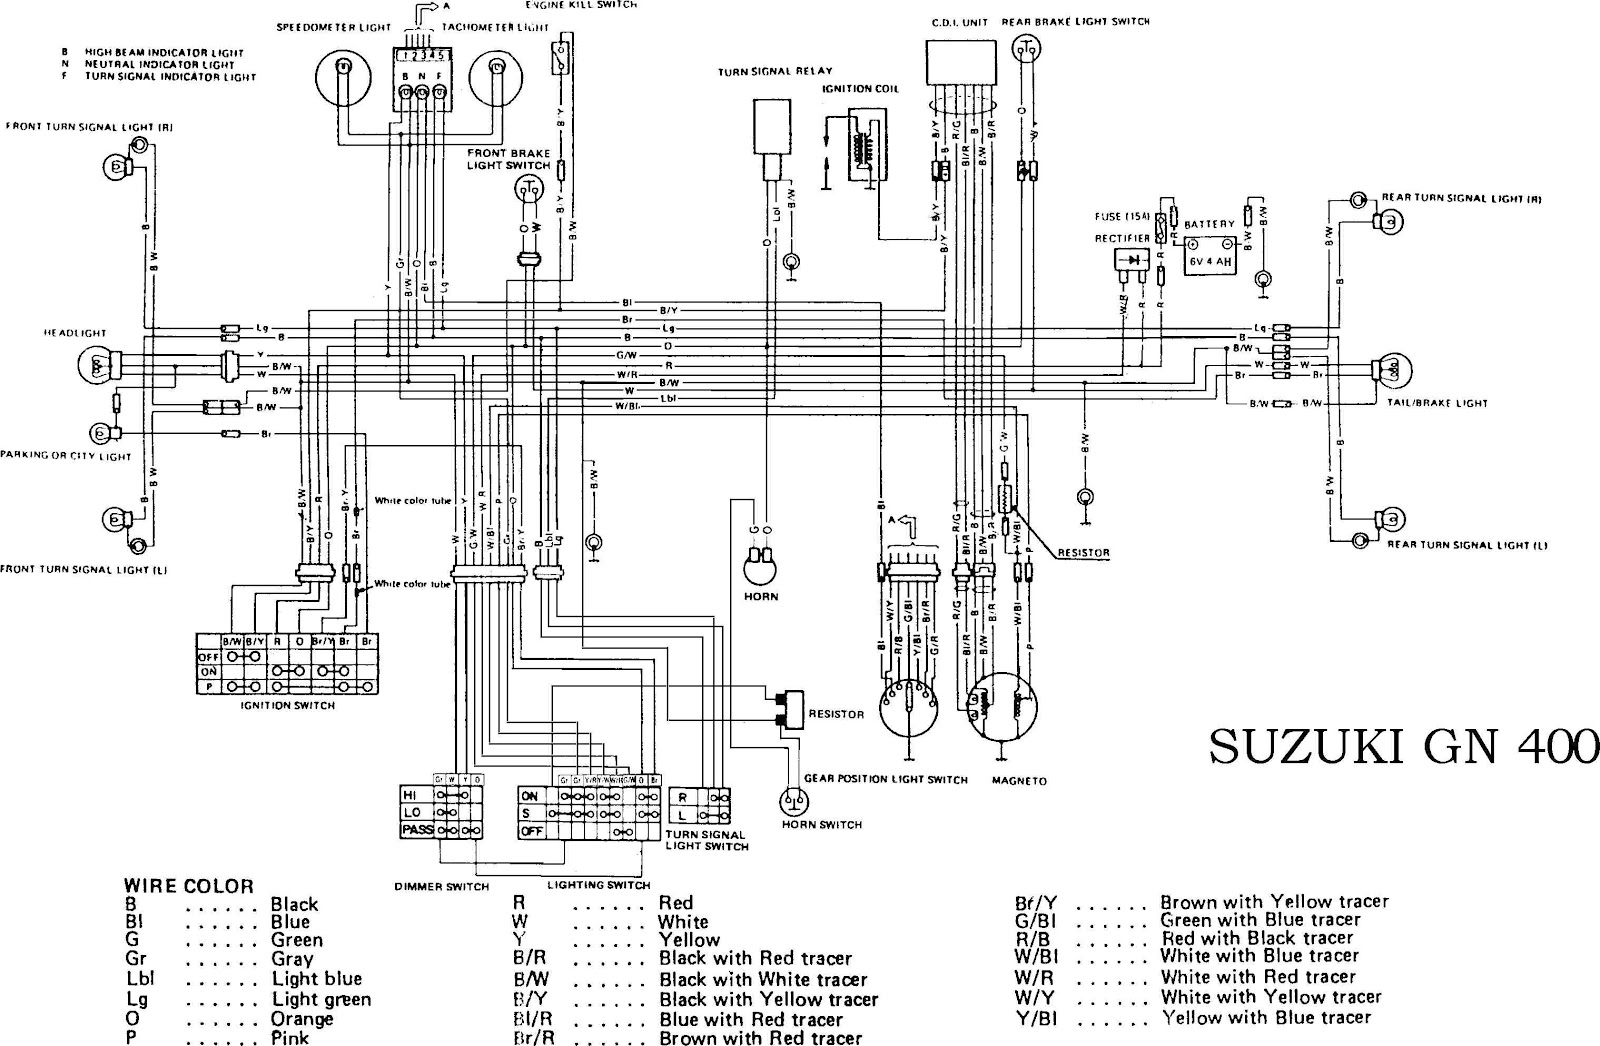 Yamaha Motorcycles Electrical Wiring Diagrams. Electrical ... on